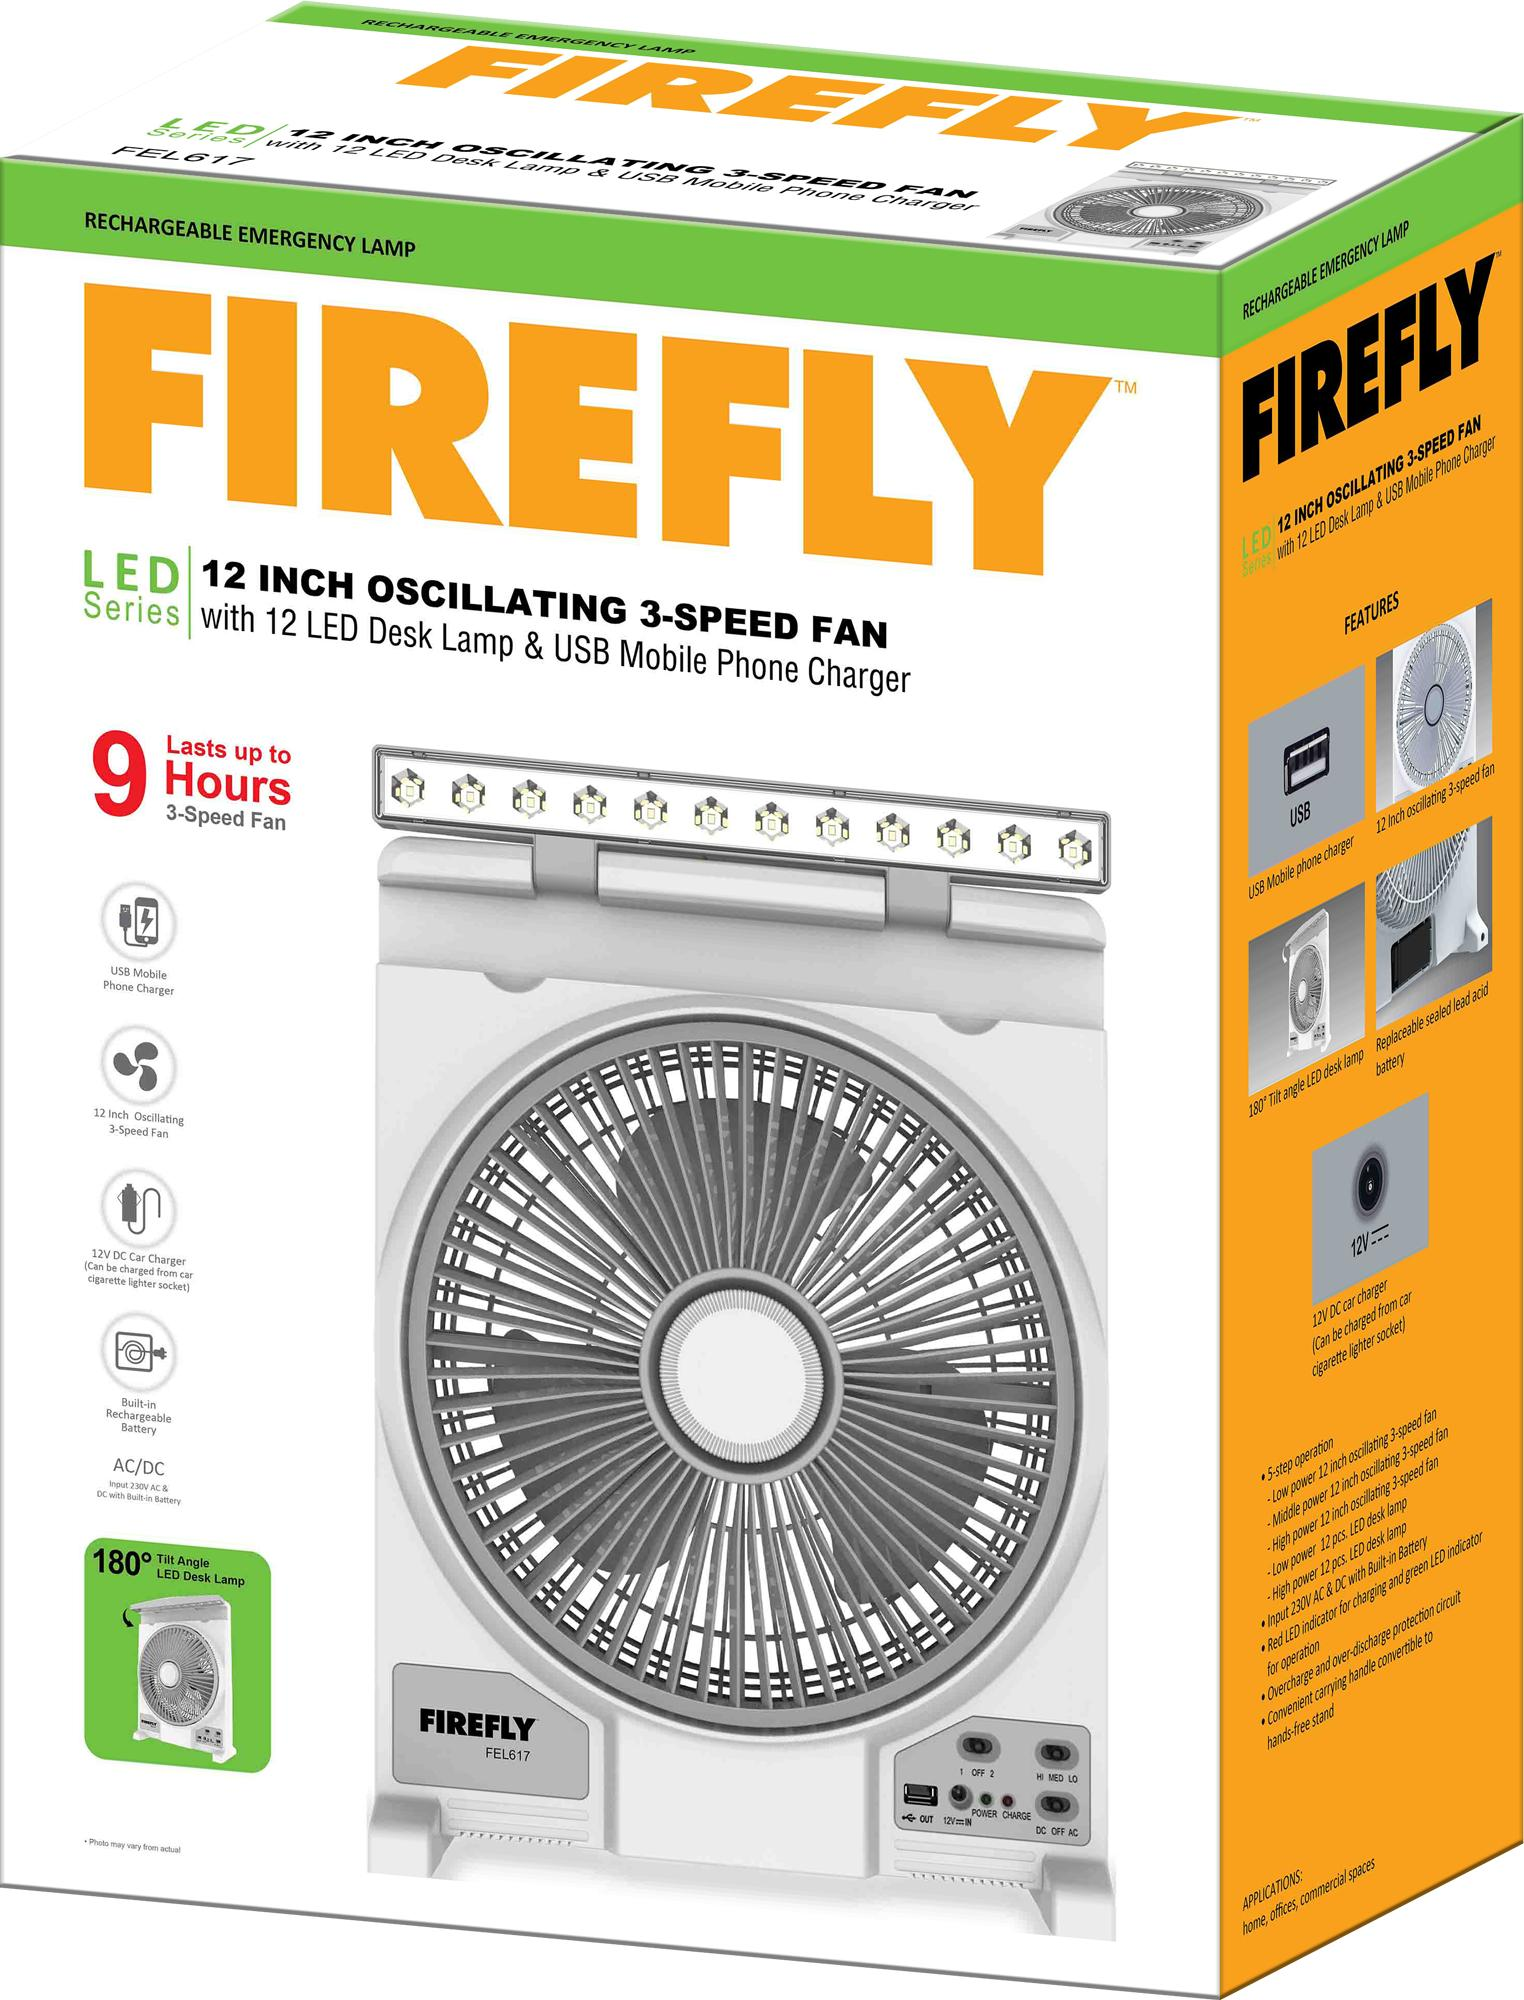 Firefly Philippines Price List Led Bulbs Hid Fixture Photocell Wiring Diagram 12 Oscillating 3 Speed Fan With Desk Lamp Usb Mobile Phone